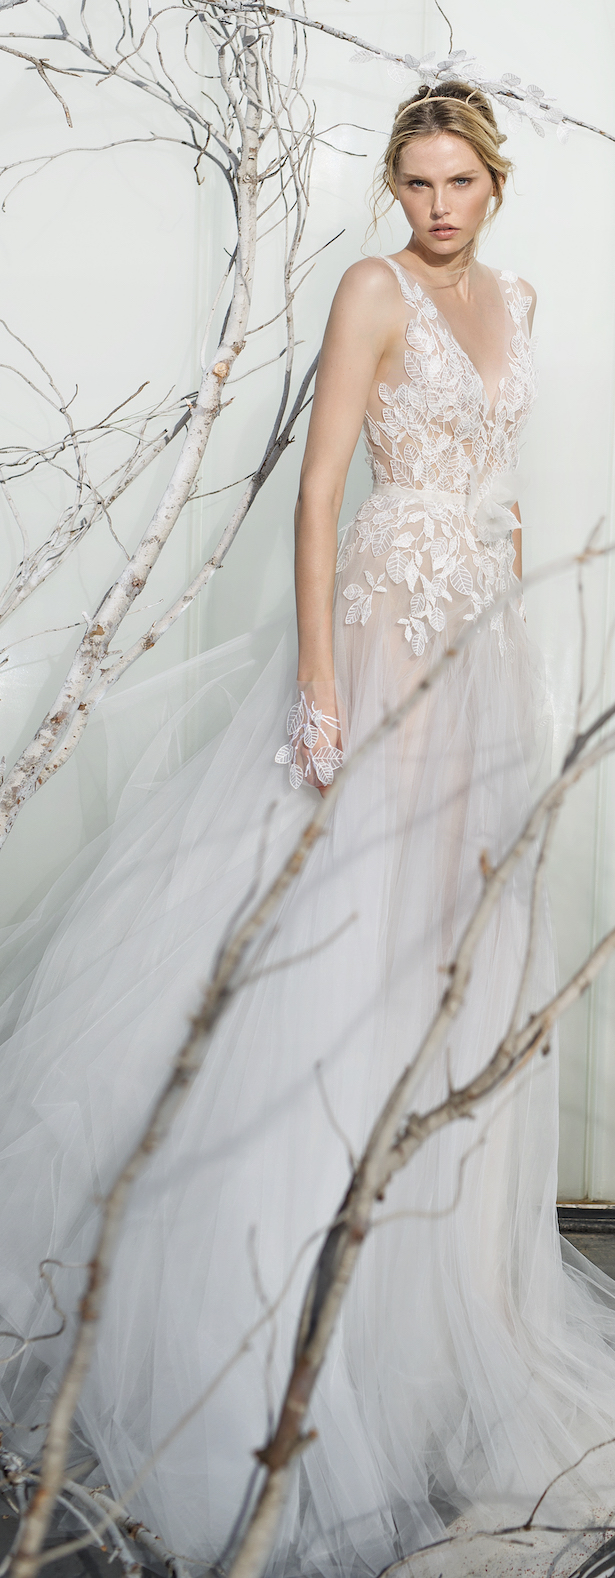 Mira zwillinger spring 2017 bridal collection whispher of mira zwillinger whispher of blossom spring 2017 fern 1 ombrellifo Gallery